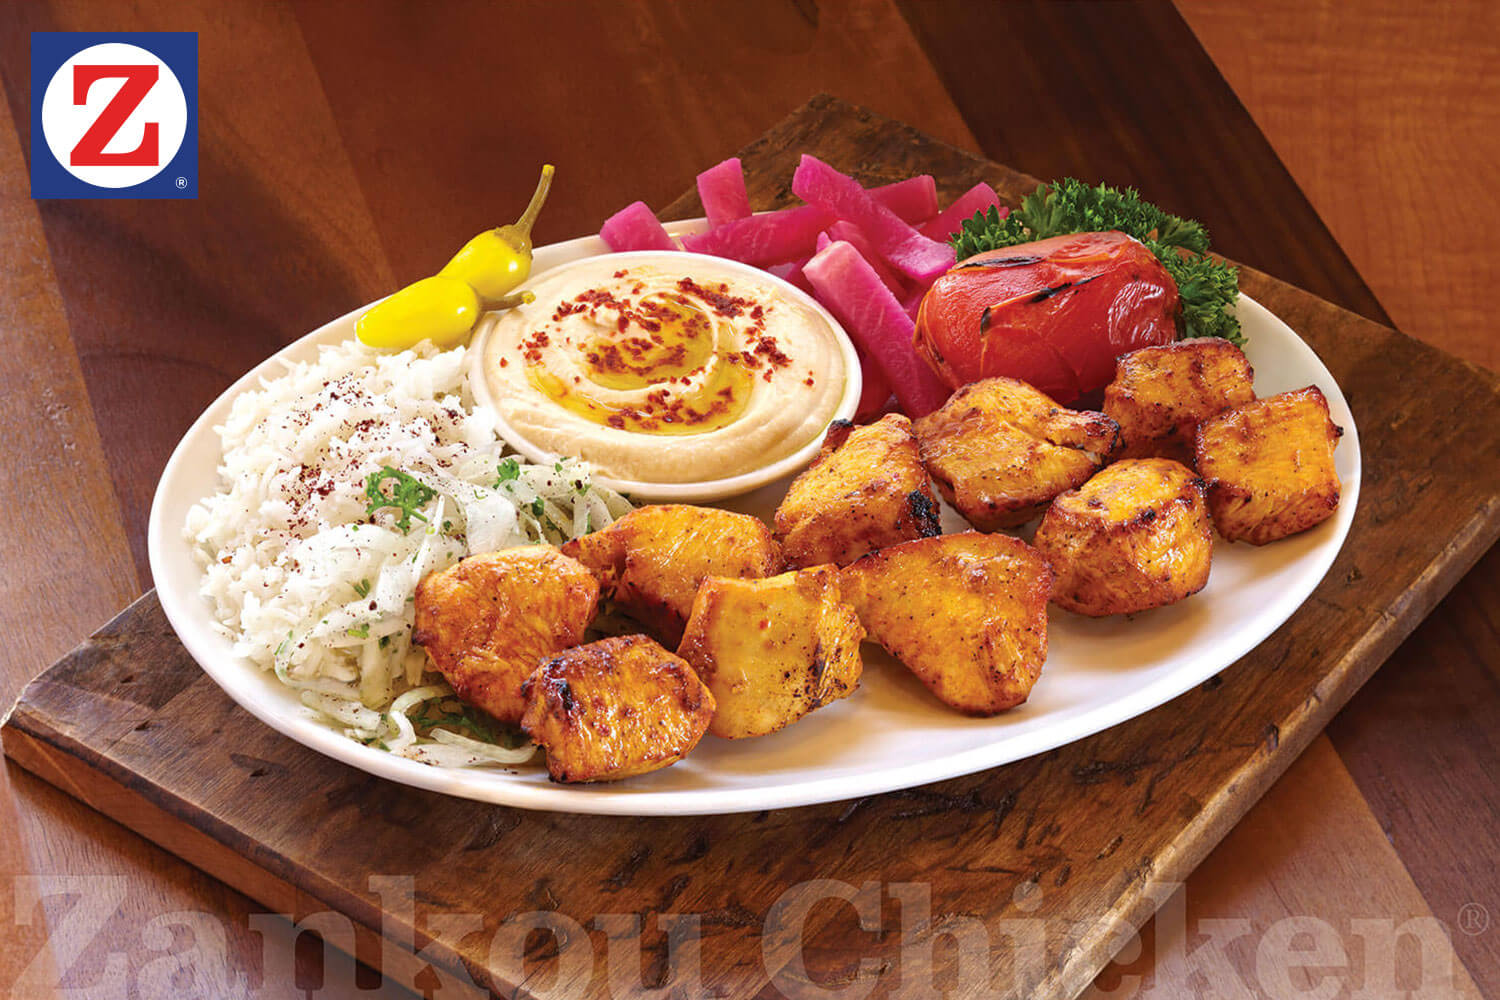 Double skewer chicken kabob plate with sides